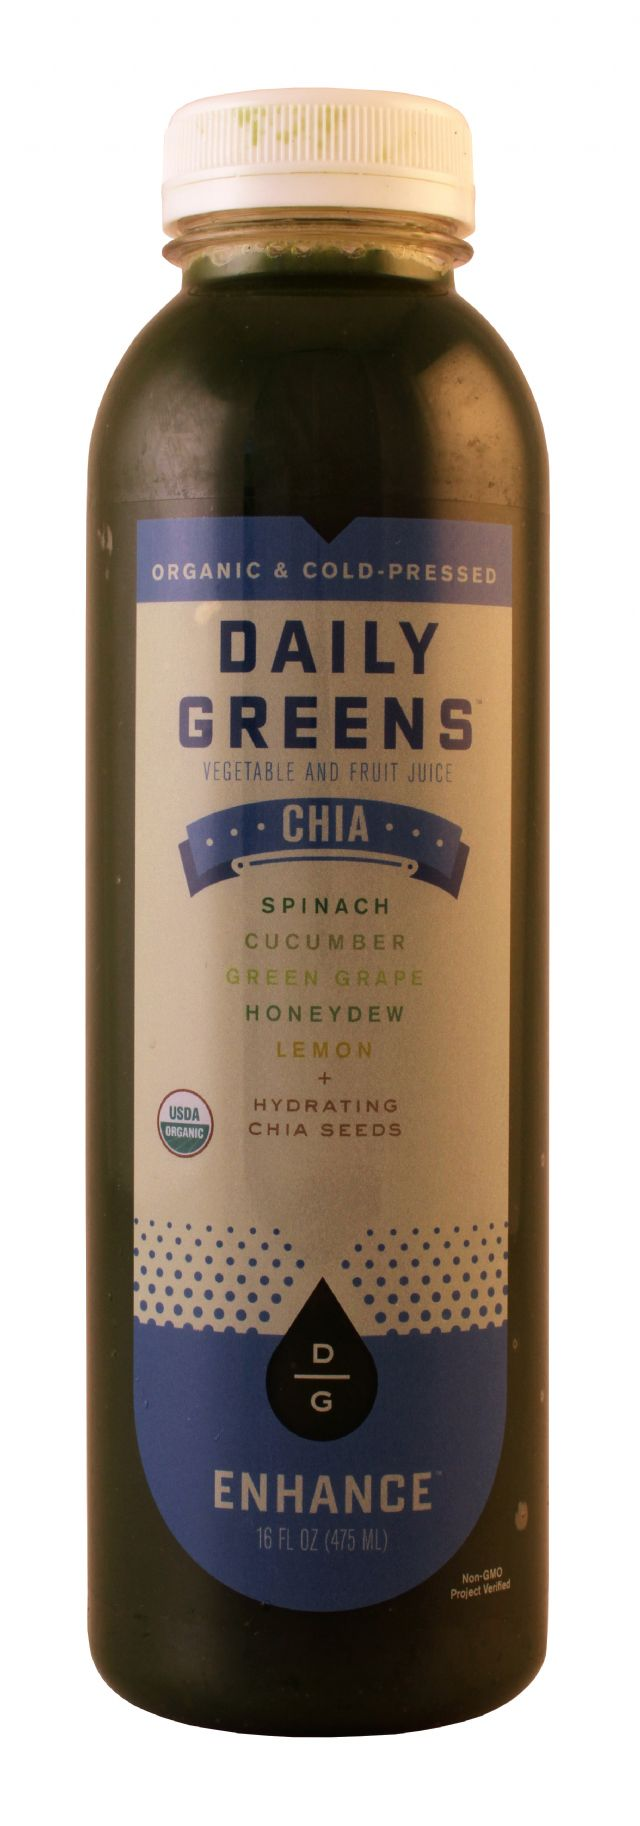 Daily Greens: DailyGreens ChiaEnhance Front